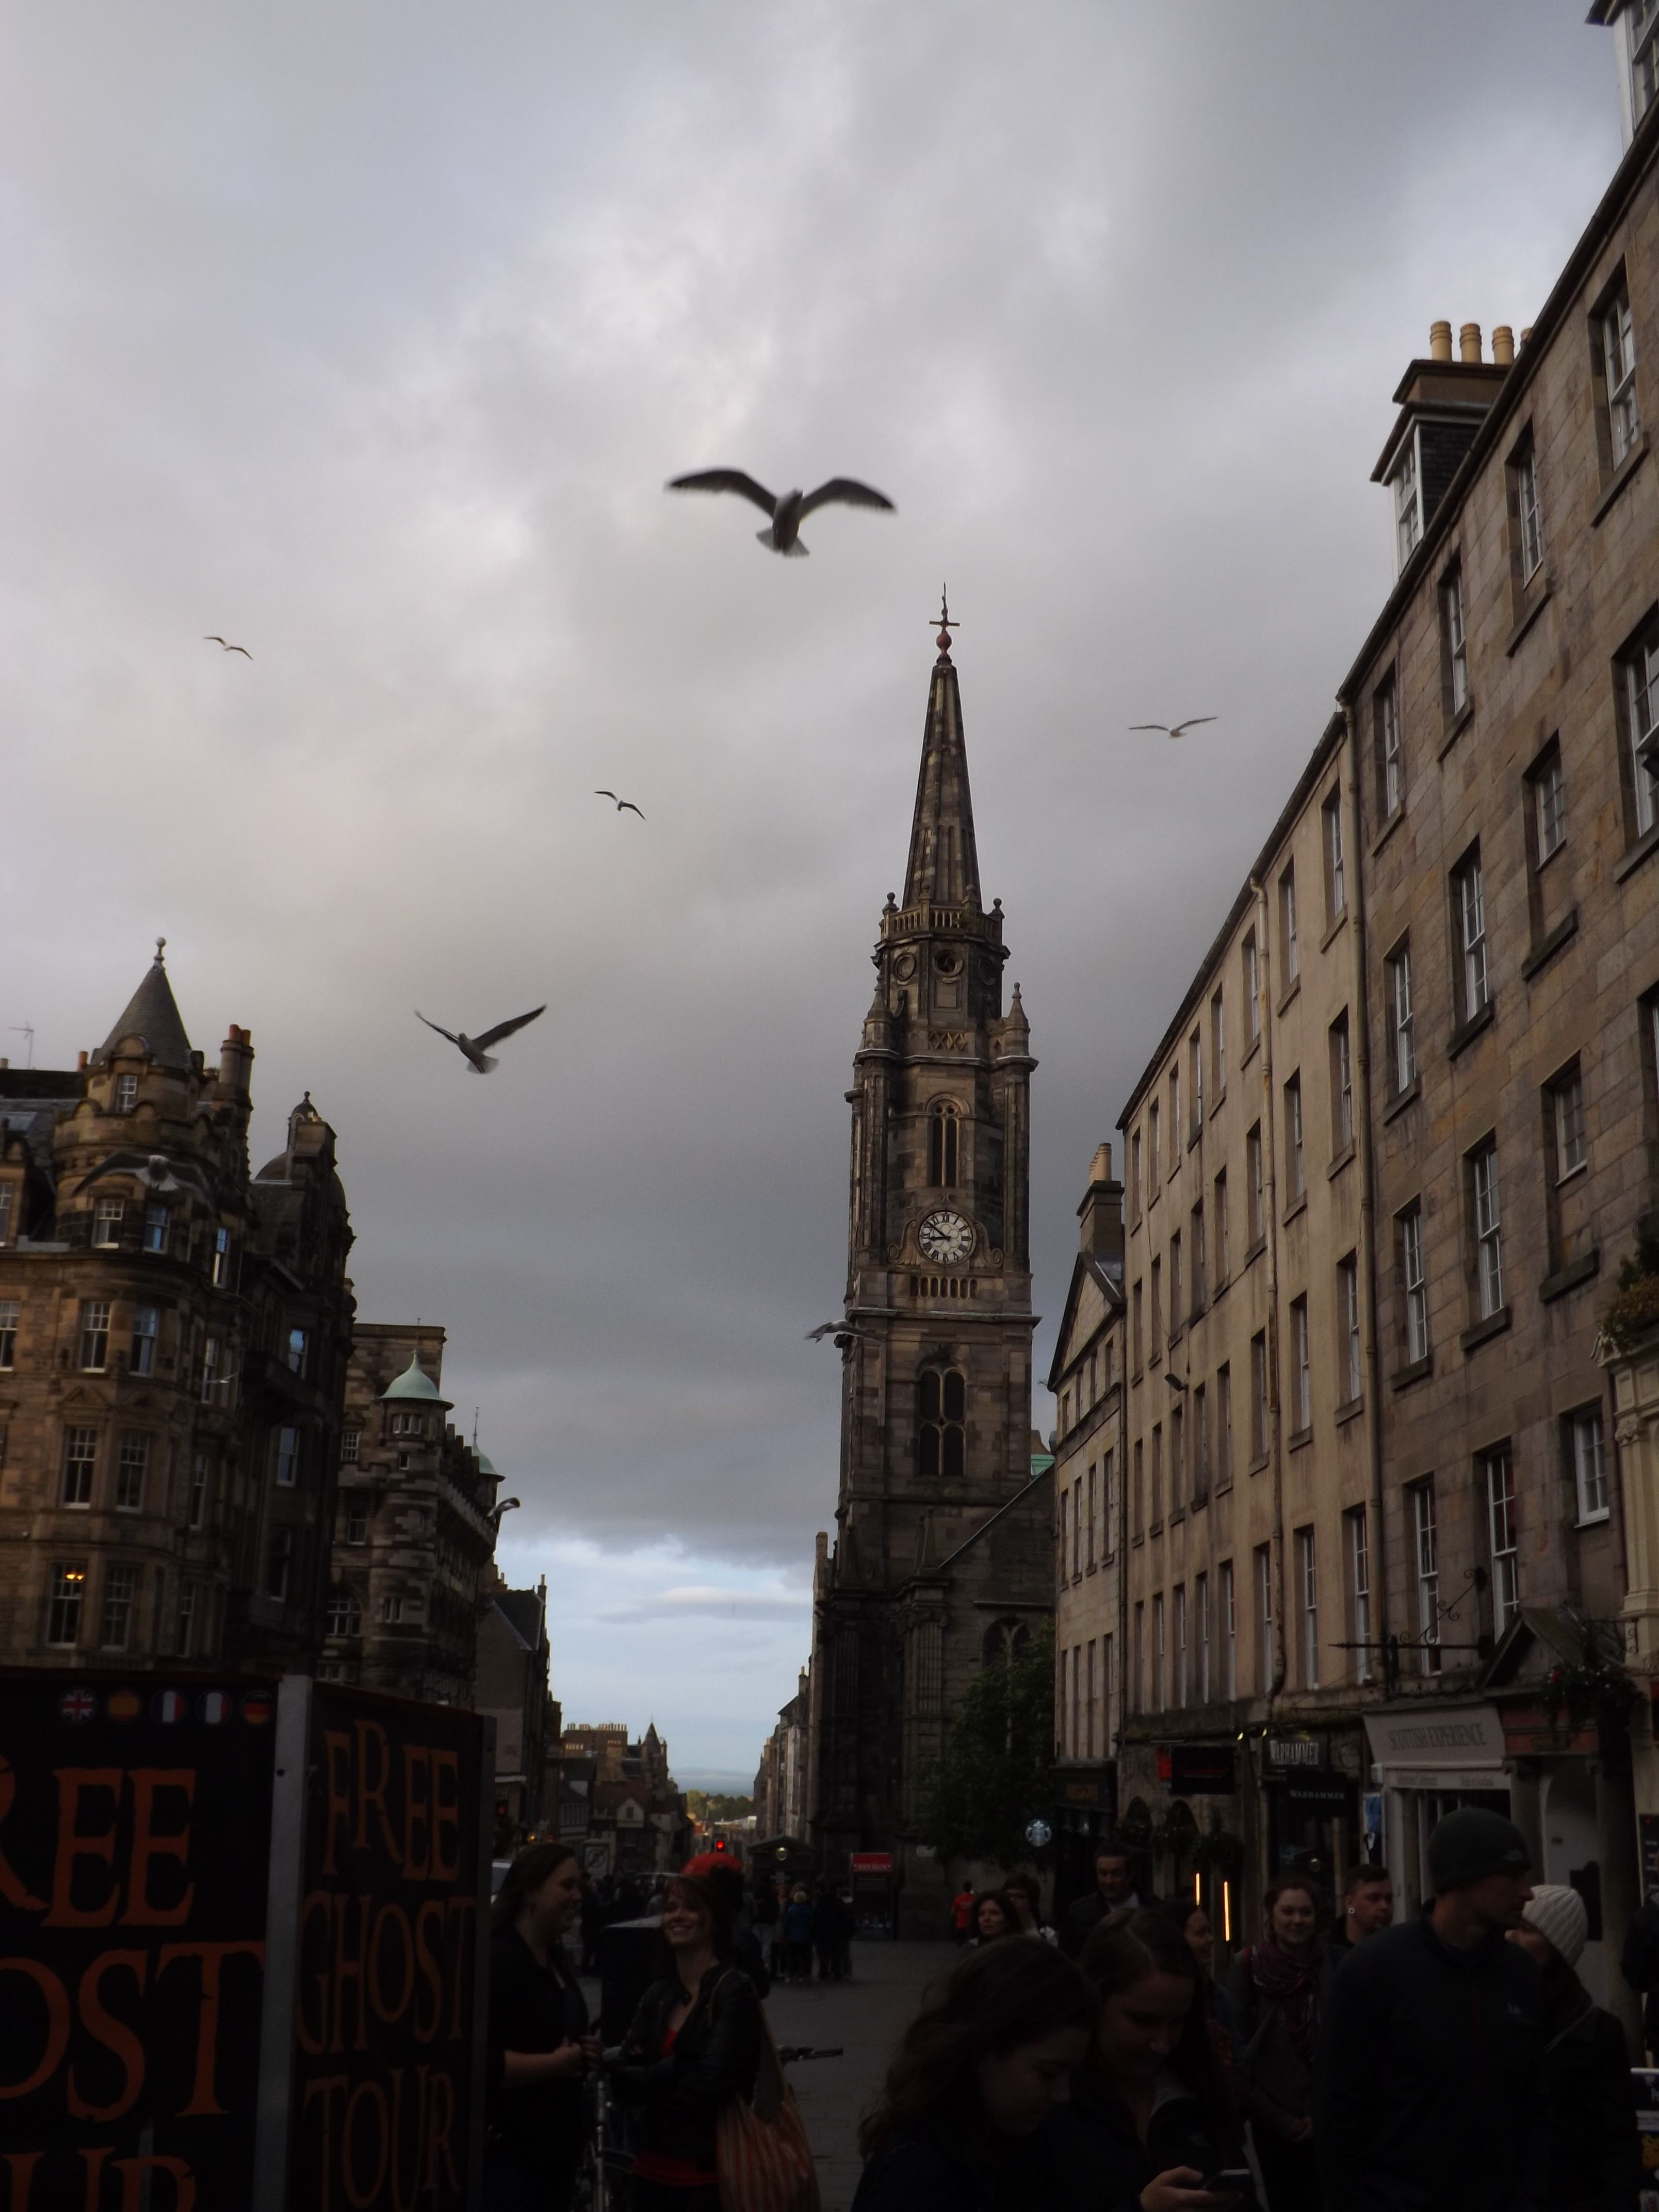 Birds circling above the Royal Mile